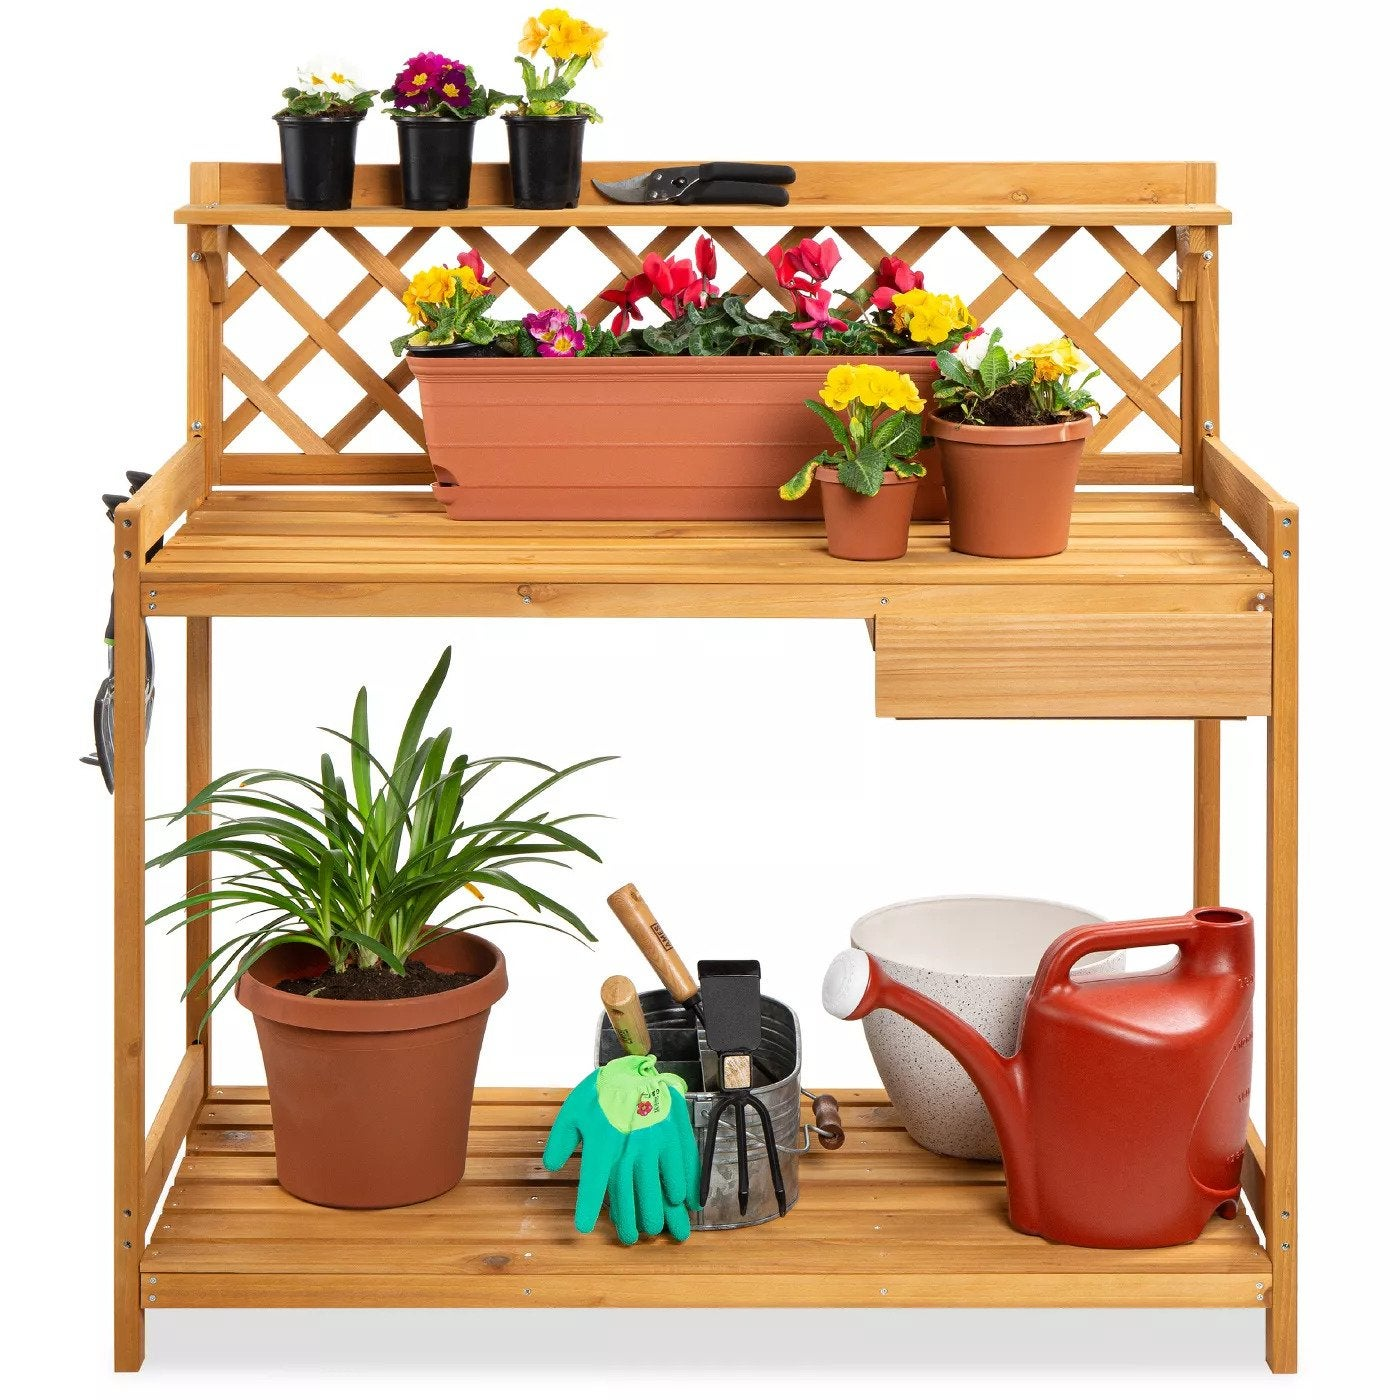 Best Choice Products Outdoor Wooden Garden Potting Bench